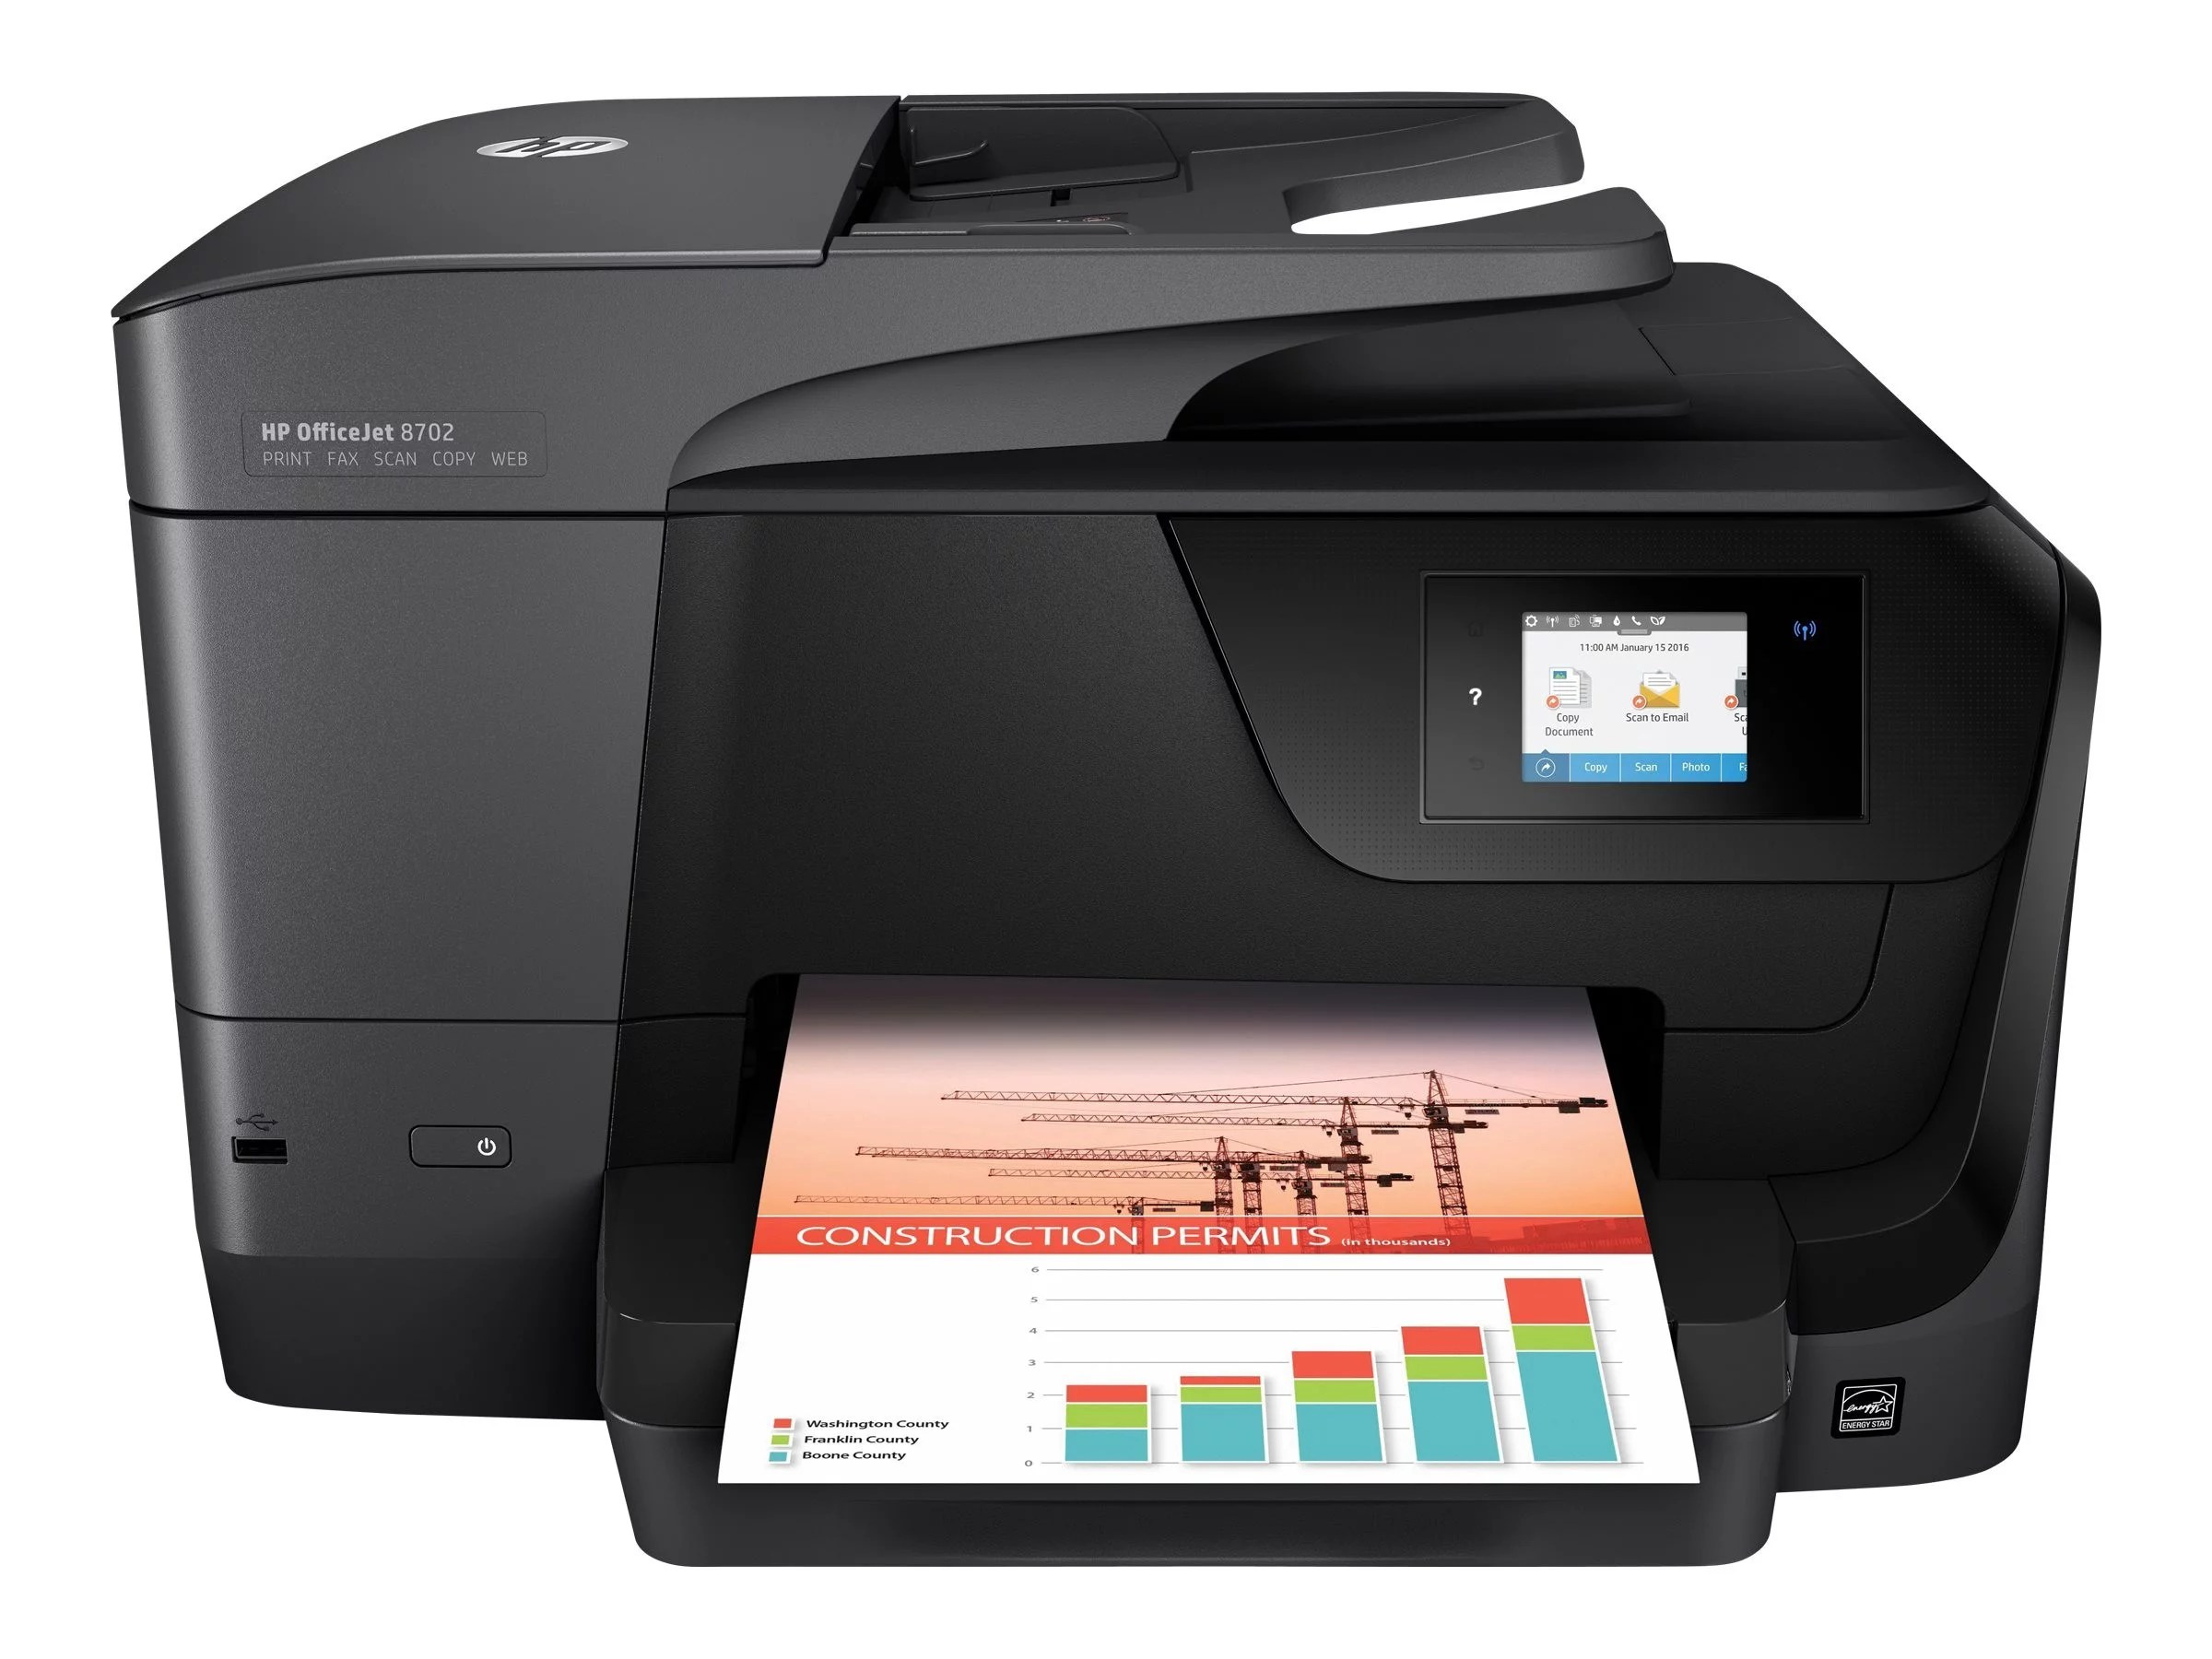 medium resolution of hp officejet 8702 wireless all in one printer m9l81a walmart comhp 8500a wireless printer